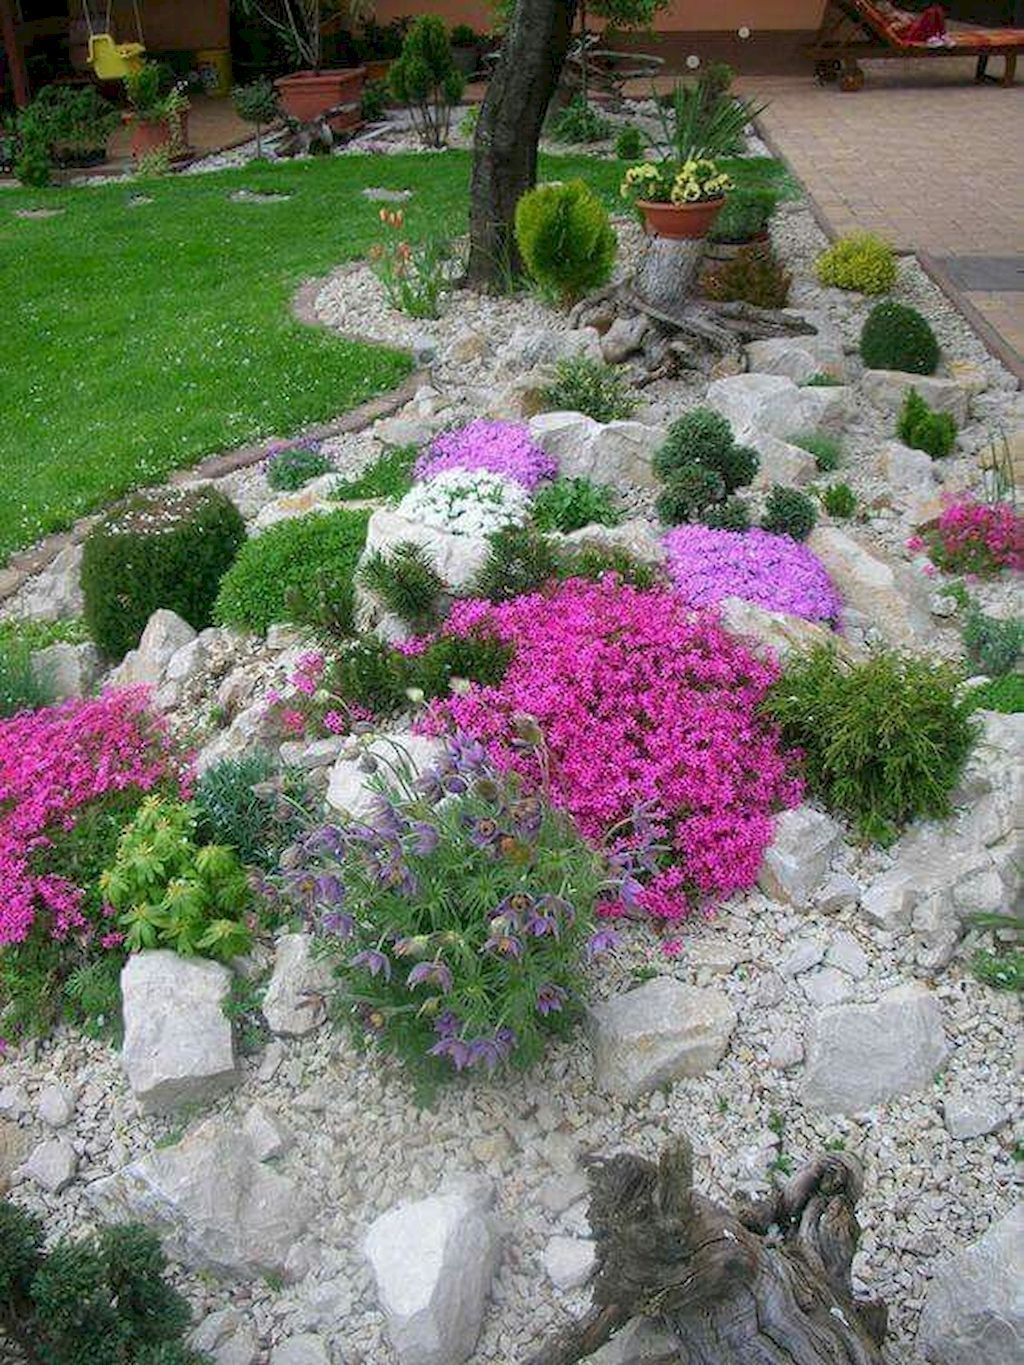 RSimple Rock Garden Decor Ideas For Front And Back Yard 33